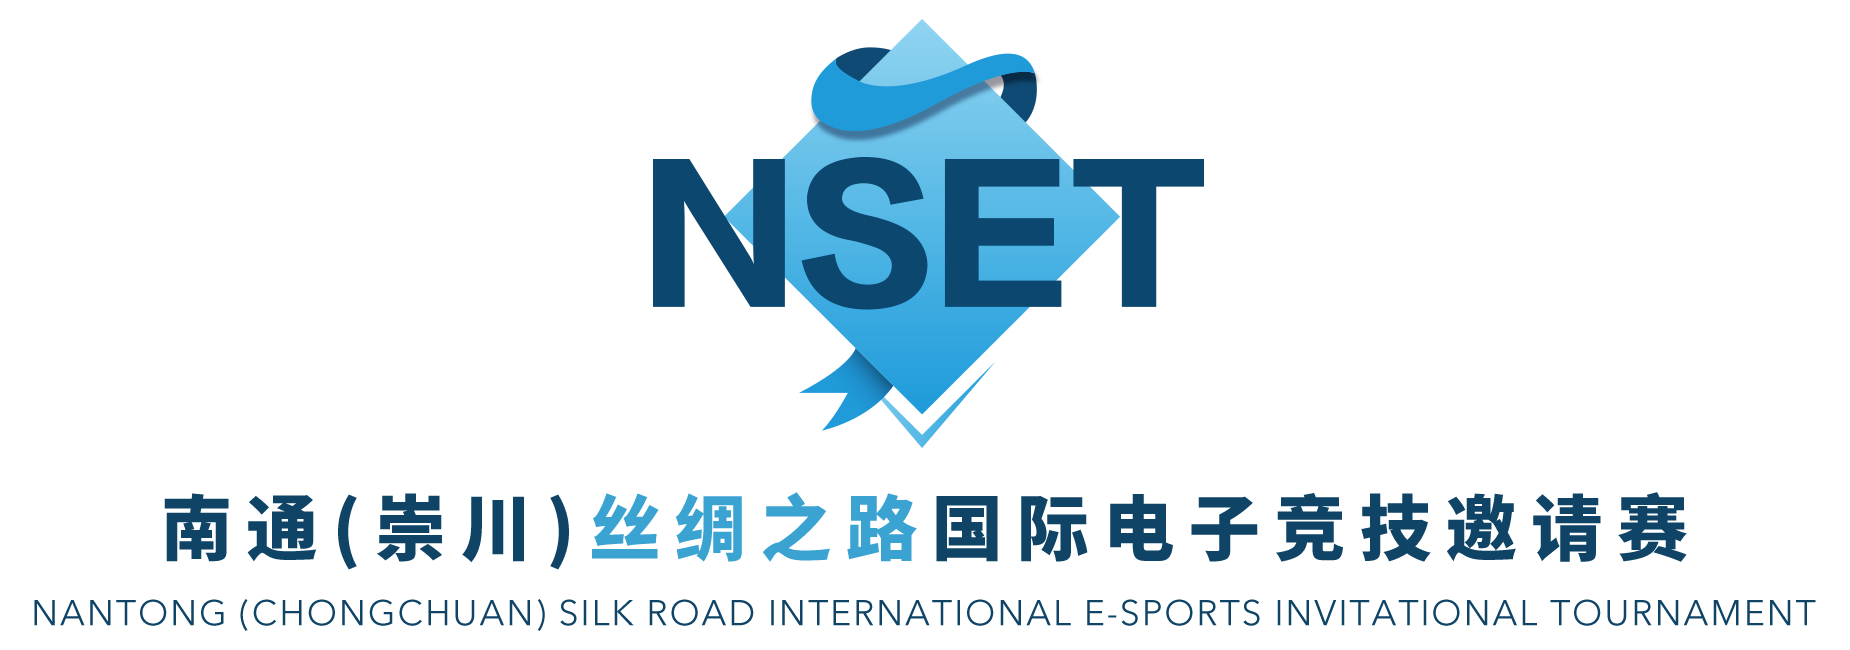 Nantong Silk Road Esports Invitational 2019  Tournament